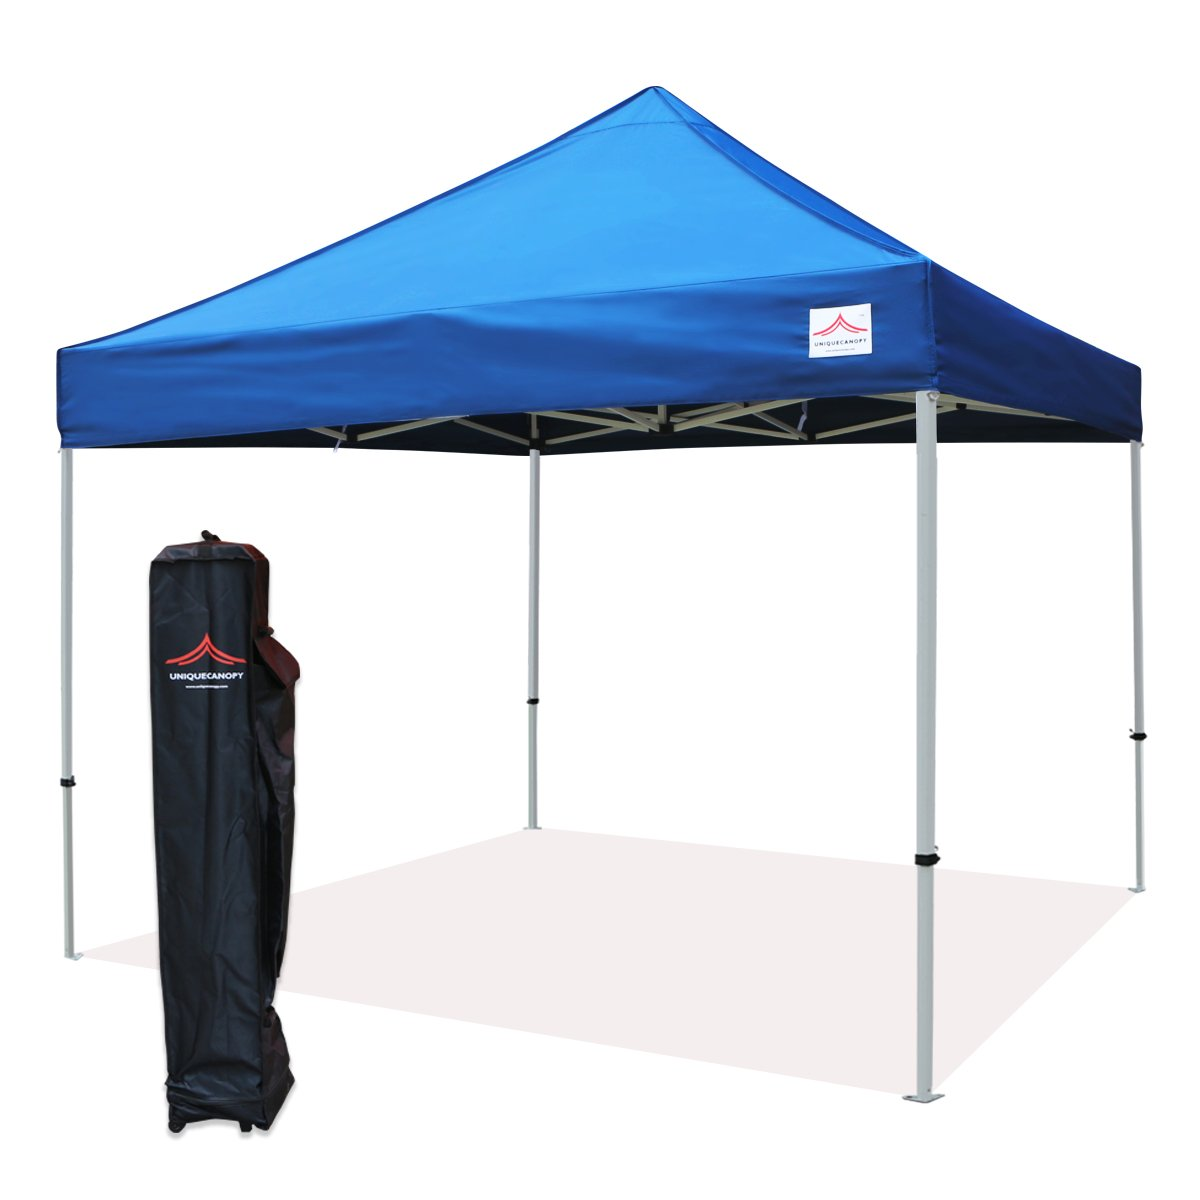 UNIQUECANOPY 10x10 Ez Pop up Canopy Tents for Parties Outdoor Portable Instant Folded Commercial Popup Shelter, with Wheeled Carrying Bag Blue